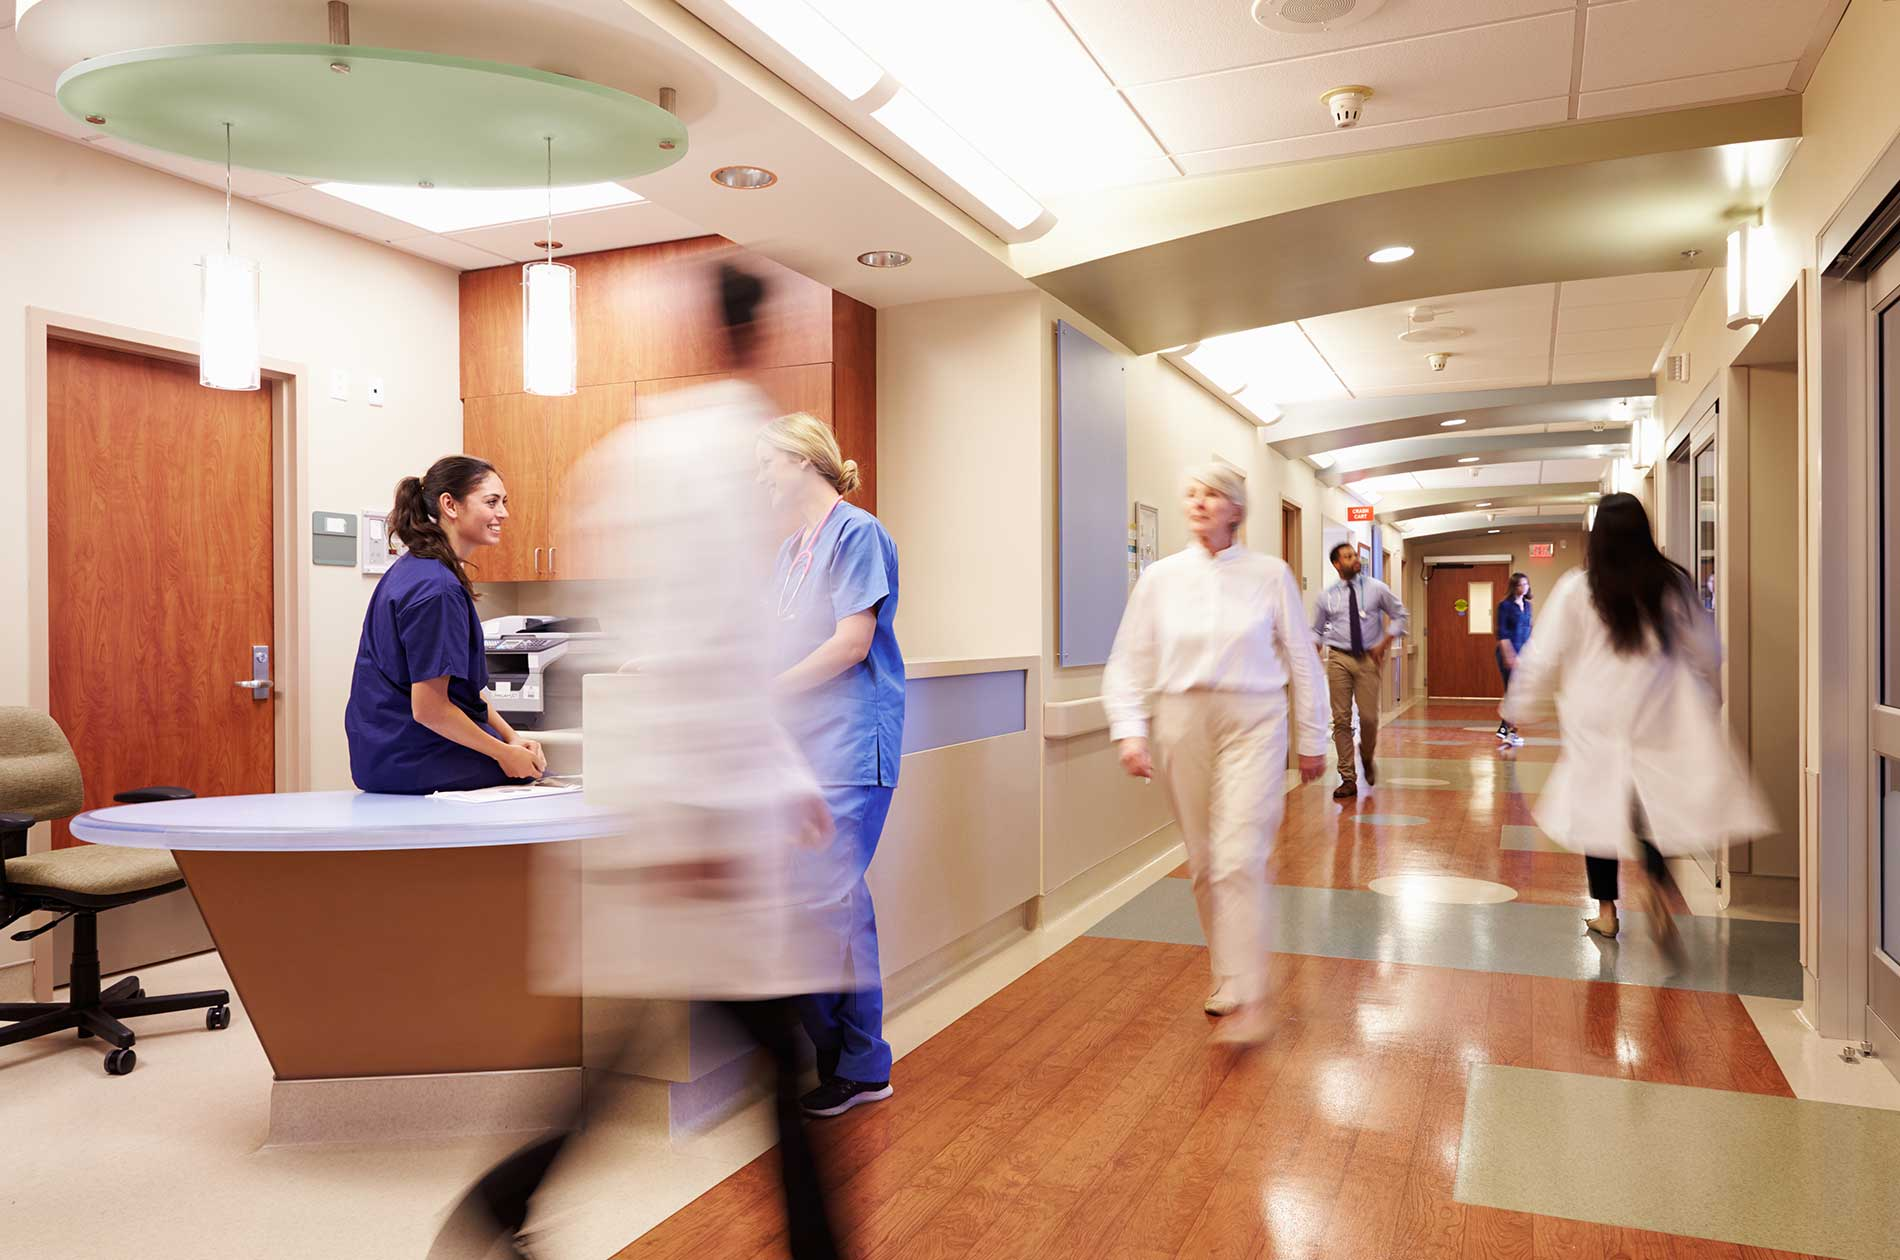 A busy hospital wing